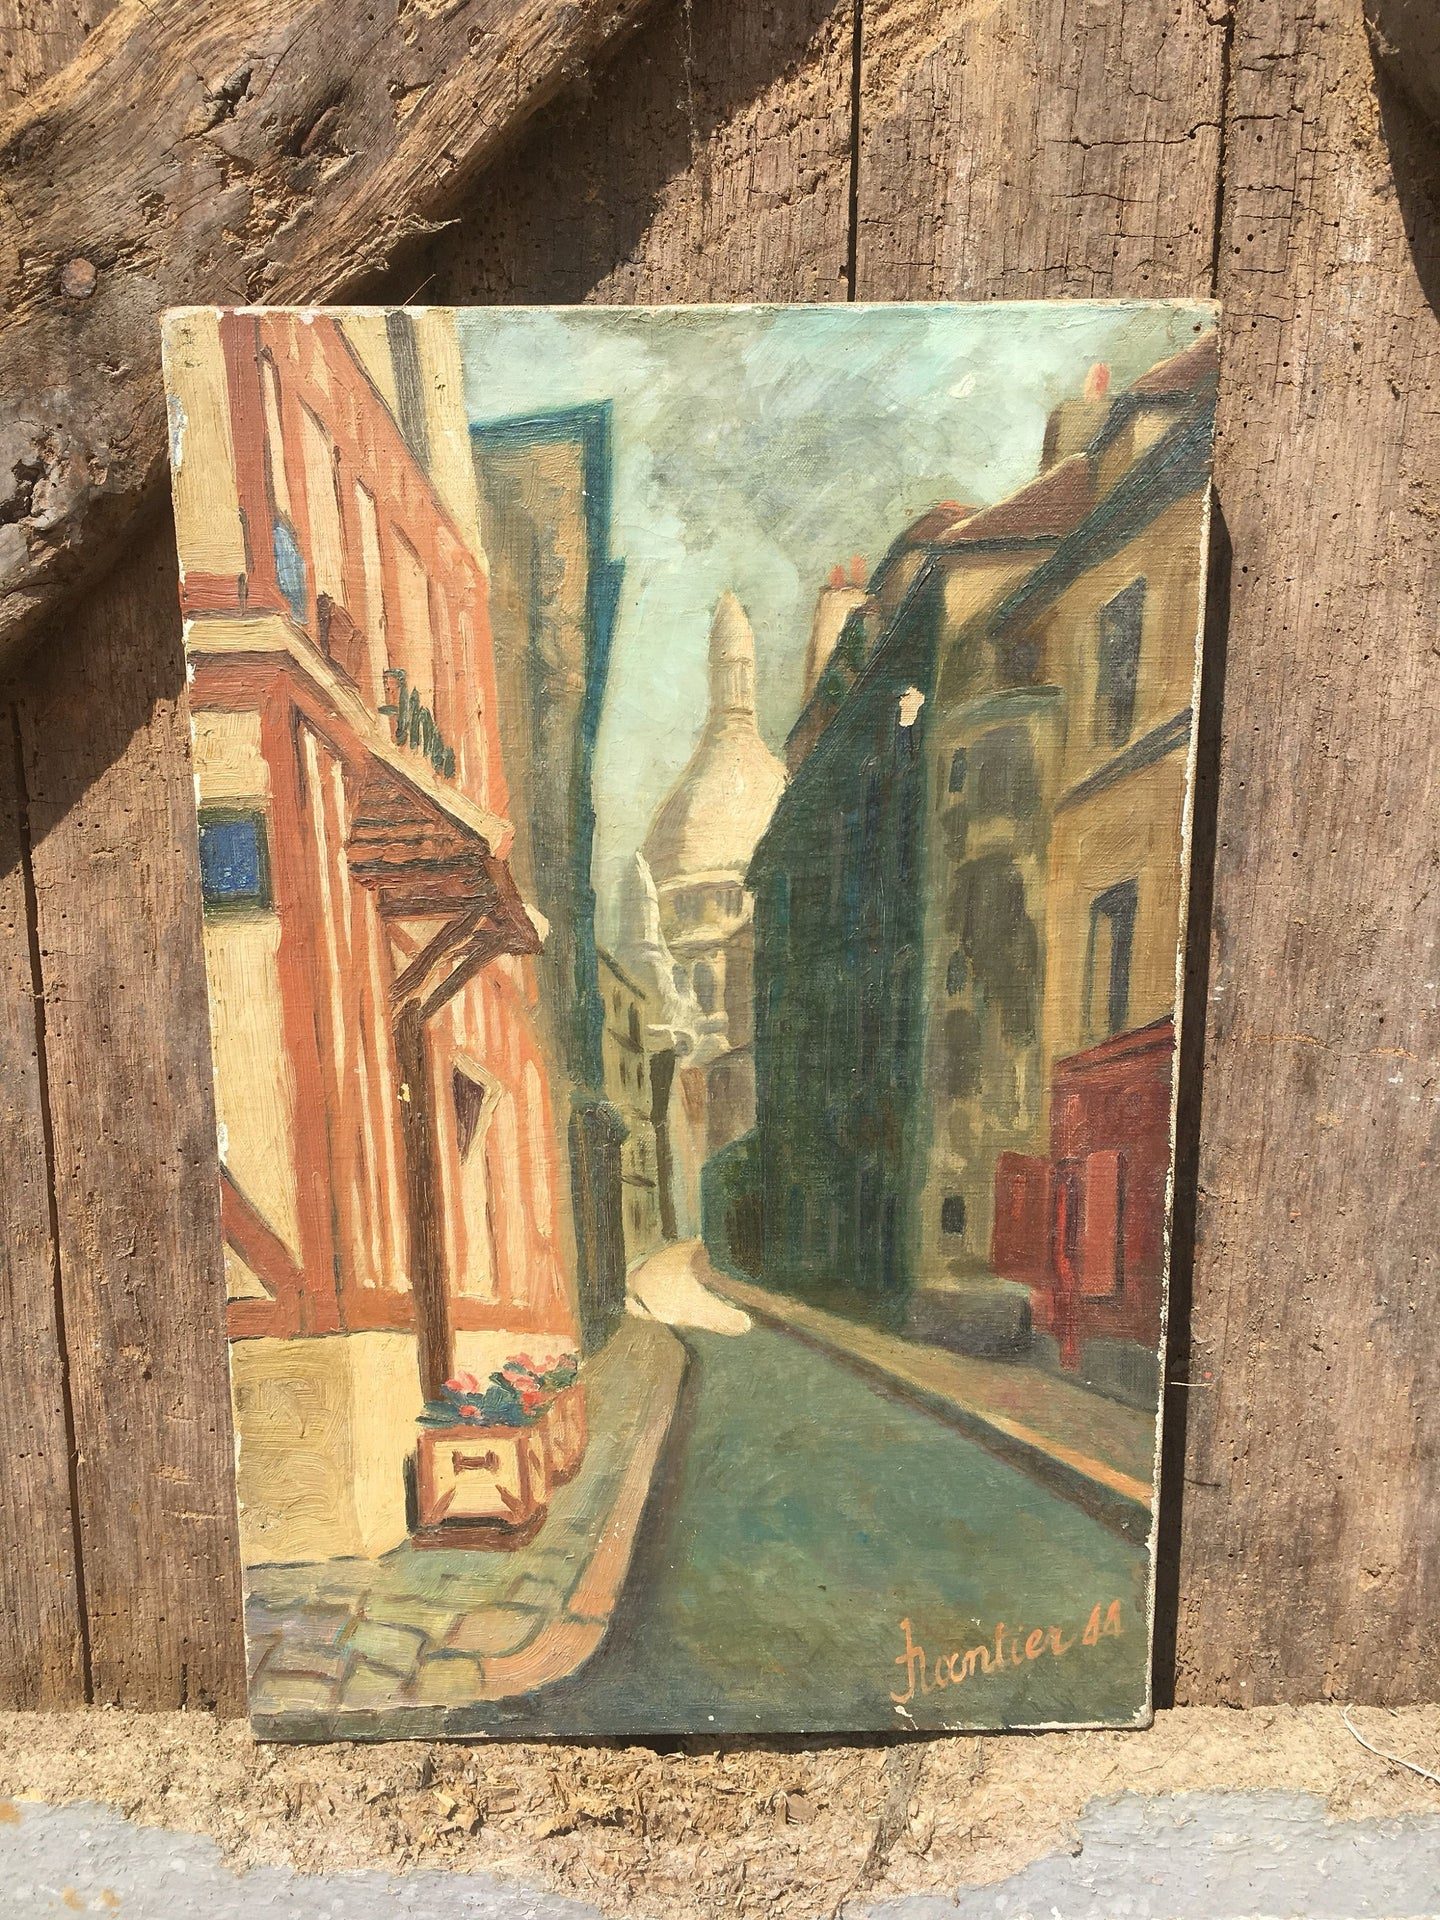 VINTAGE FRENCH Oil Painting on Canvas Dated 1944 Montmartre, Paris Scene MIDCENTURY